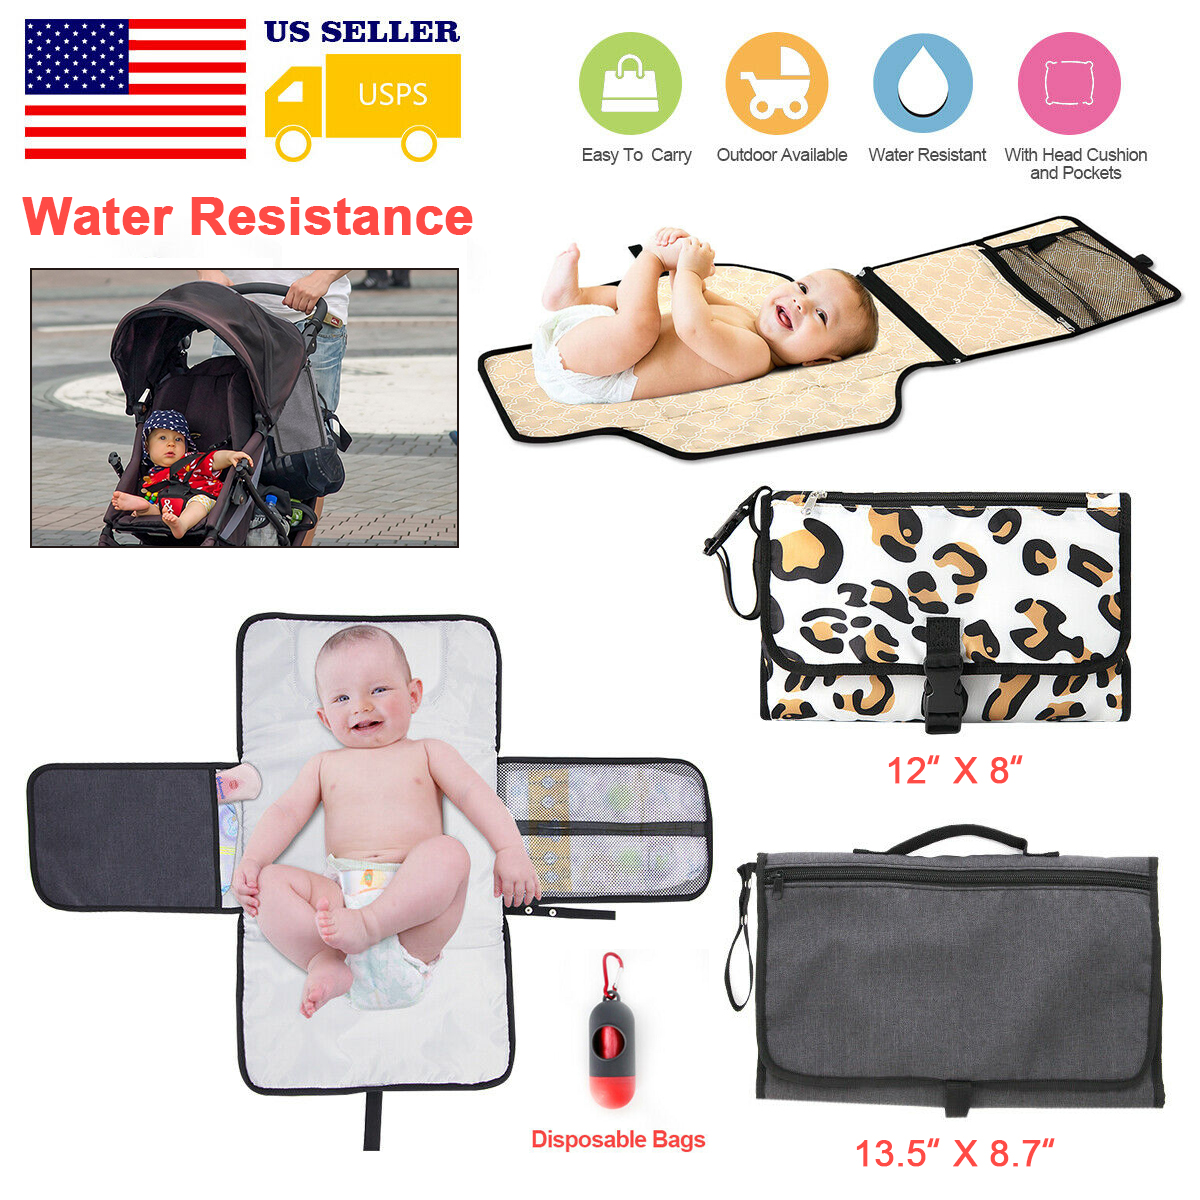 Diaper Changing Pad Baby Changing Pad Portable with Head Cushion and Pockets Portable Changing Pad Waterproof /& Foldable Changing Table Pad Travel Baby Changing Station Diaper Clutch